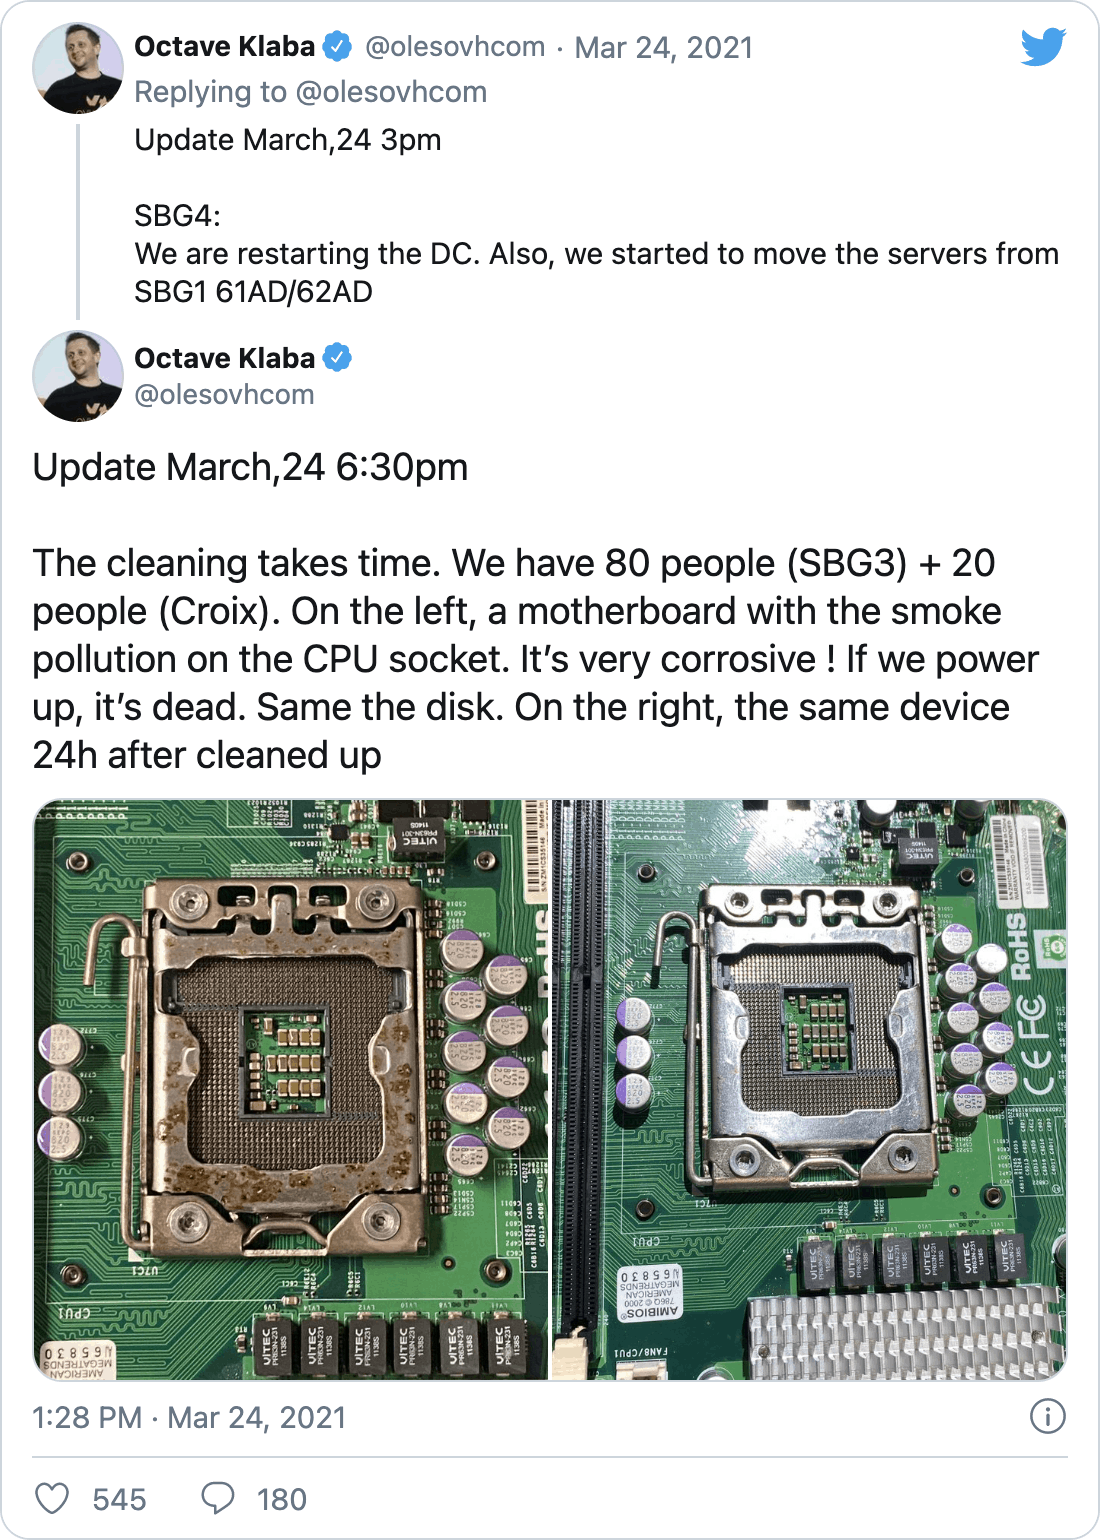 "@olesovhcom on Twitter: ""Update March,24 6:30pm The cleaning takes time. We have 80 people (SBG3) + 20 people (Croix). On the left, a motherboard with the smoke pollution on the CPU socket. It's very corrosive ! If we power up, it's dead. Same the disk. On the right, the same device 24h after cleaned up"""